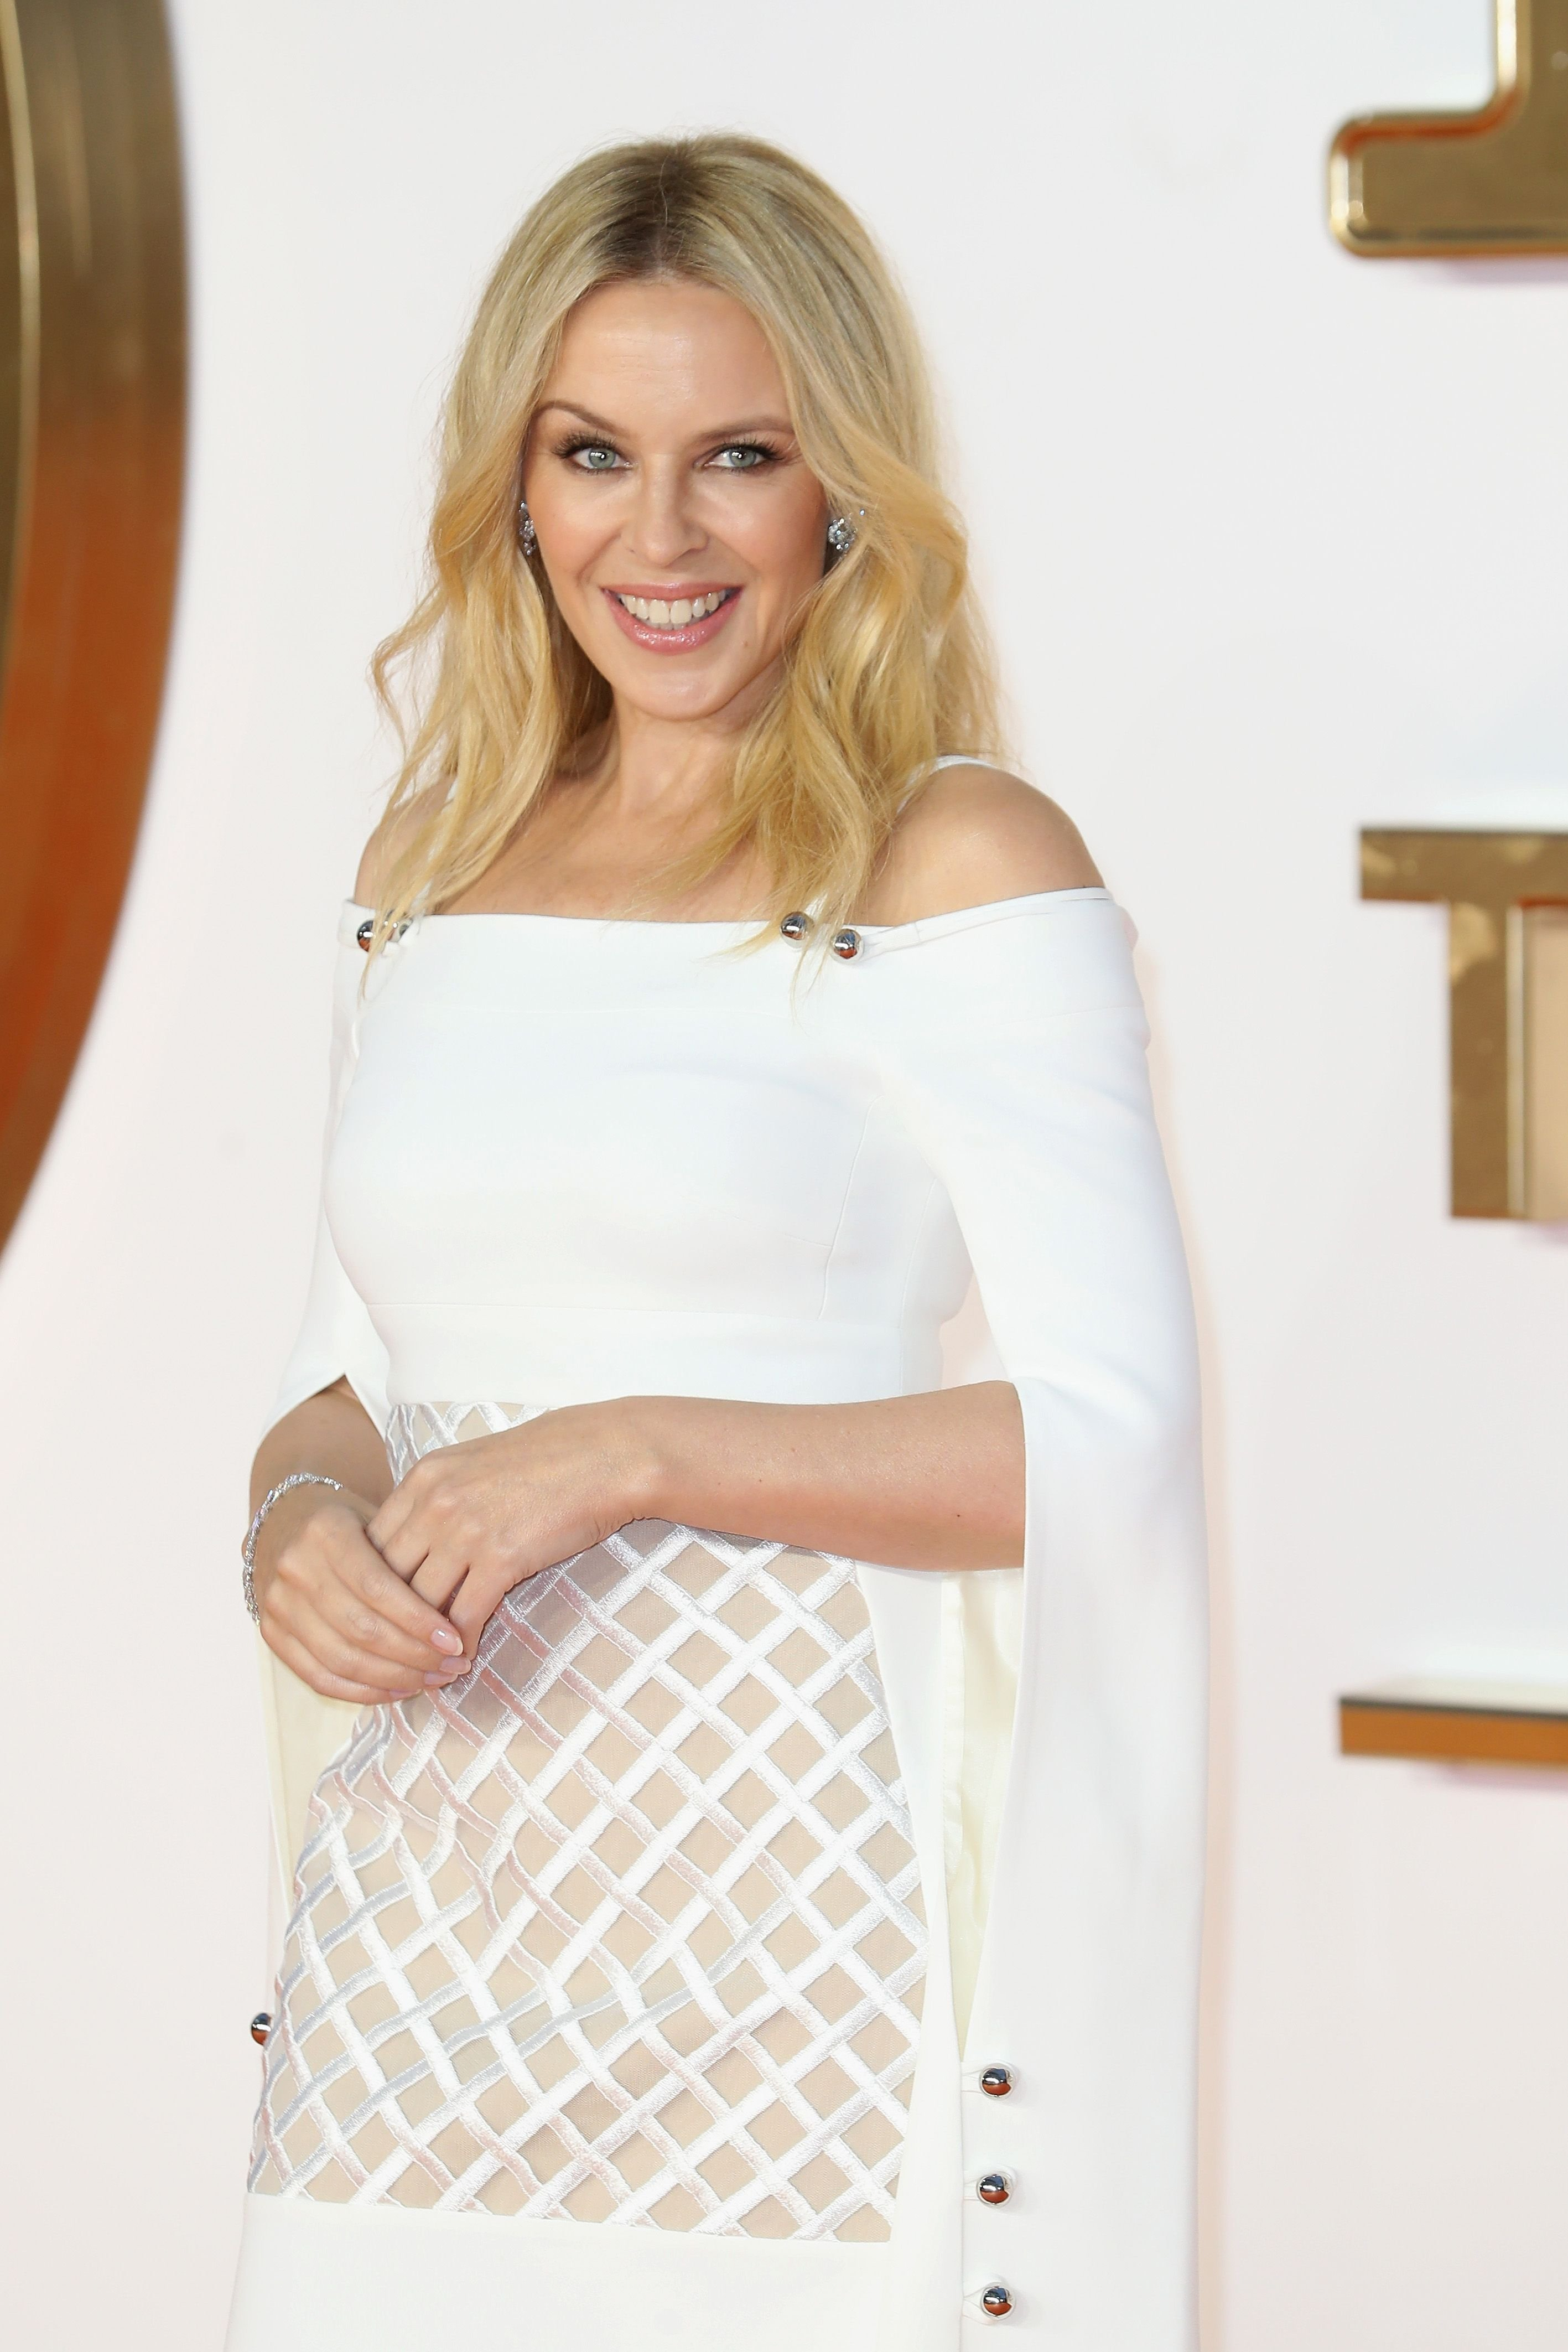 Kylie Minogue at the 'Kingsman: The Golden Circle' world premiere in September 17 in London   Photo: Getty Images